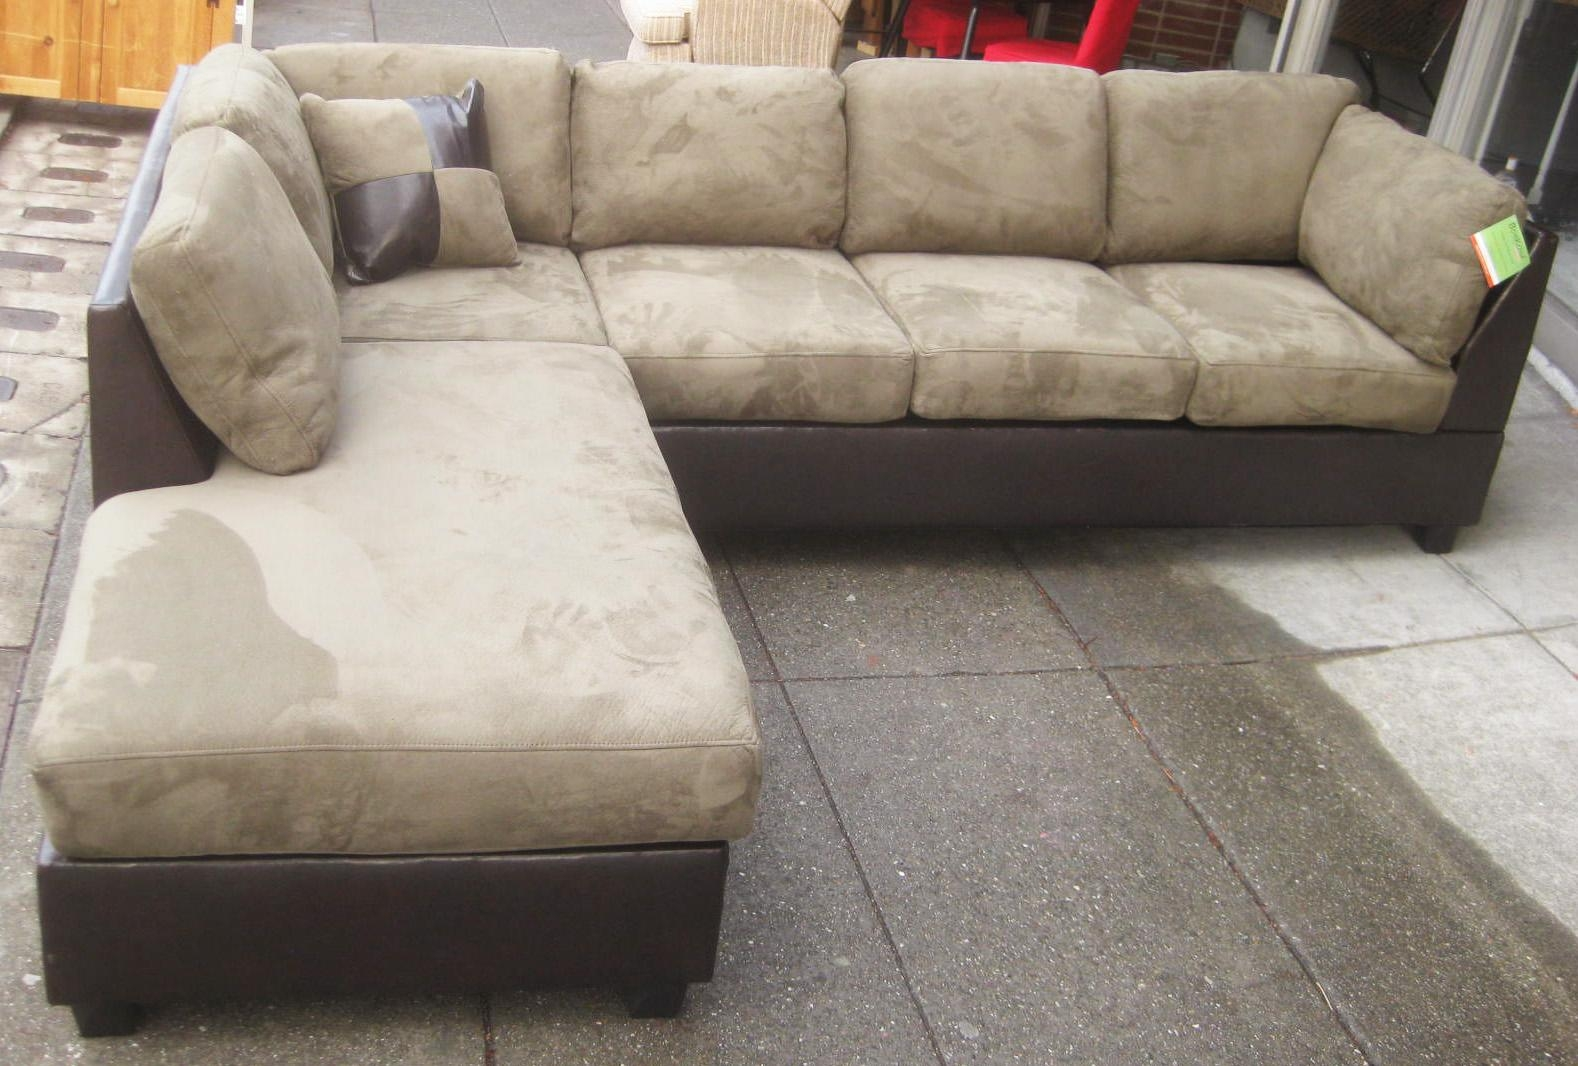 Interior: Impressive Microsuede Sectional Collections Sets For Inside Suede Sectionals (Image 9 of 20)